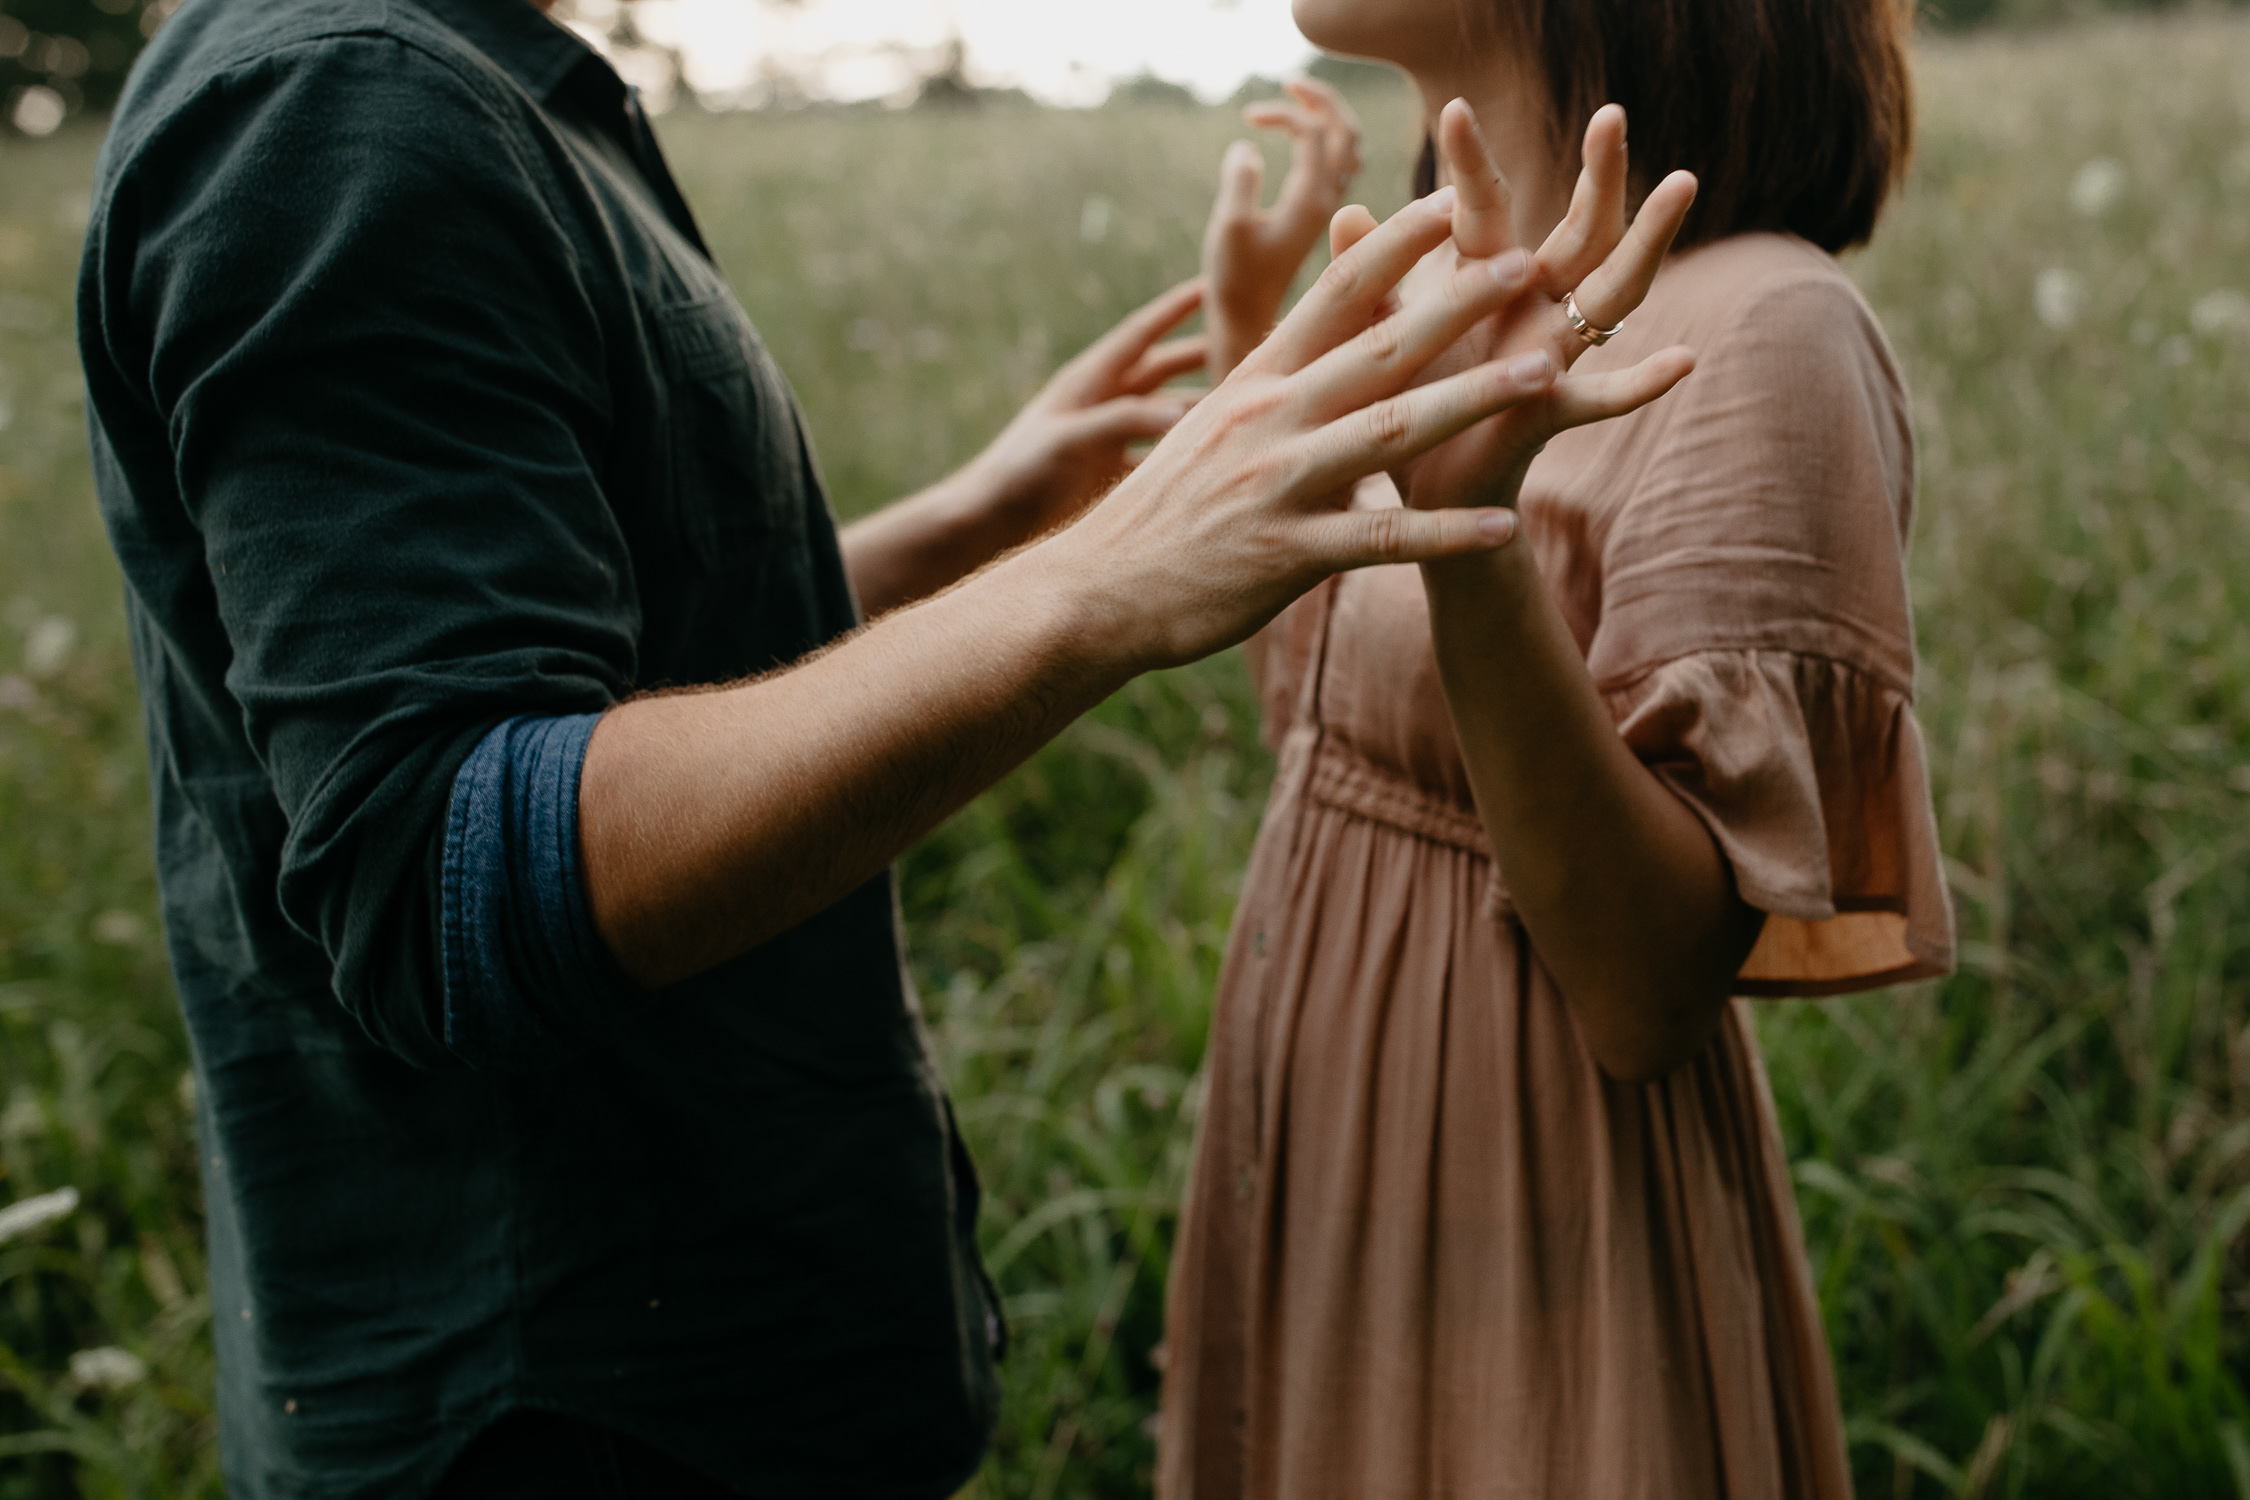 ariannamtorres and isaac engagement session at cades cove smoky mountains elopement-87.jpg